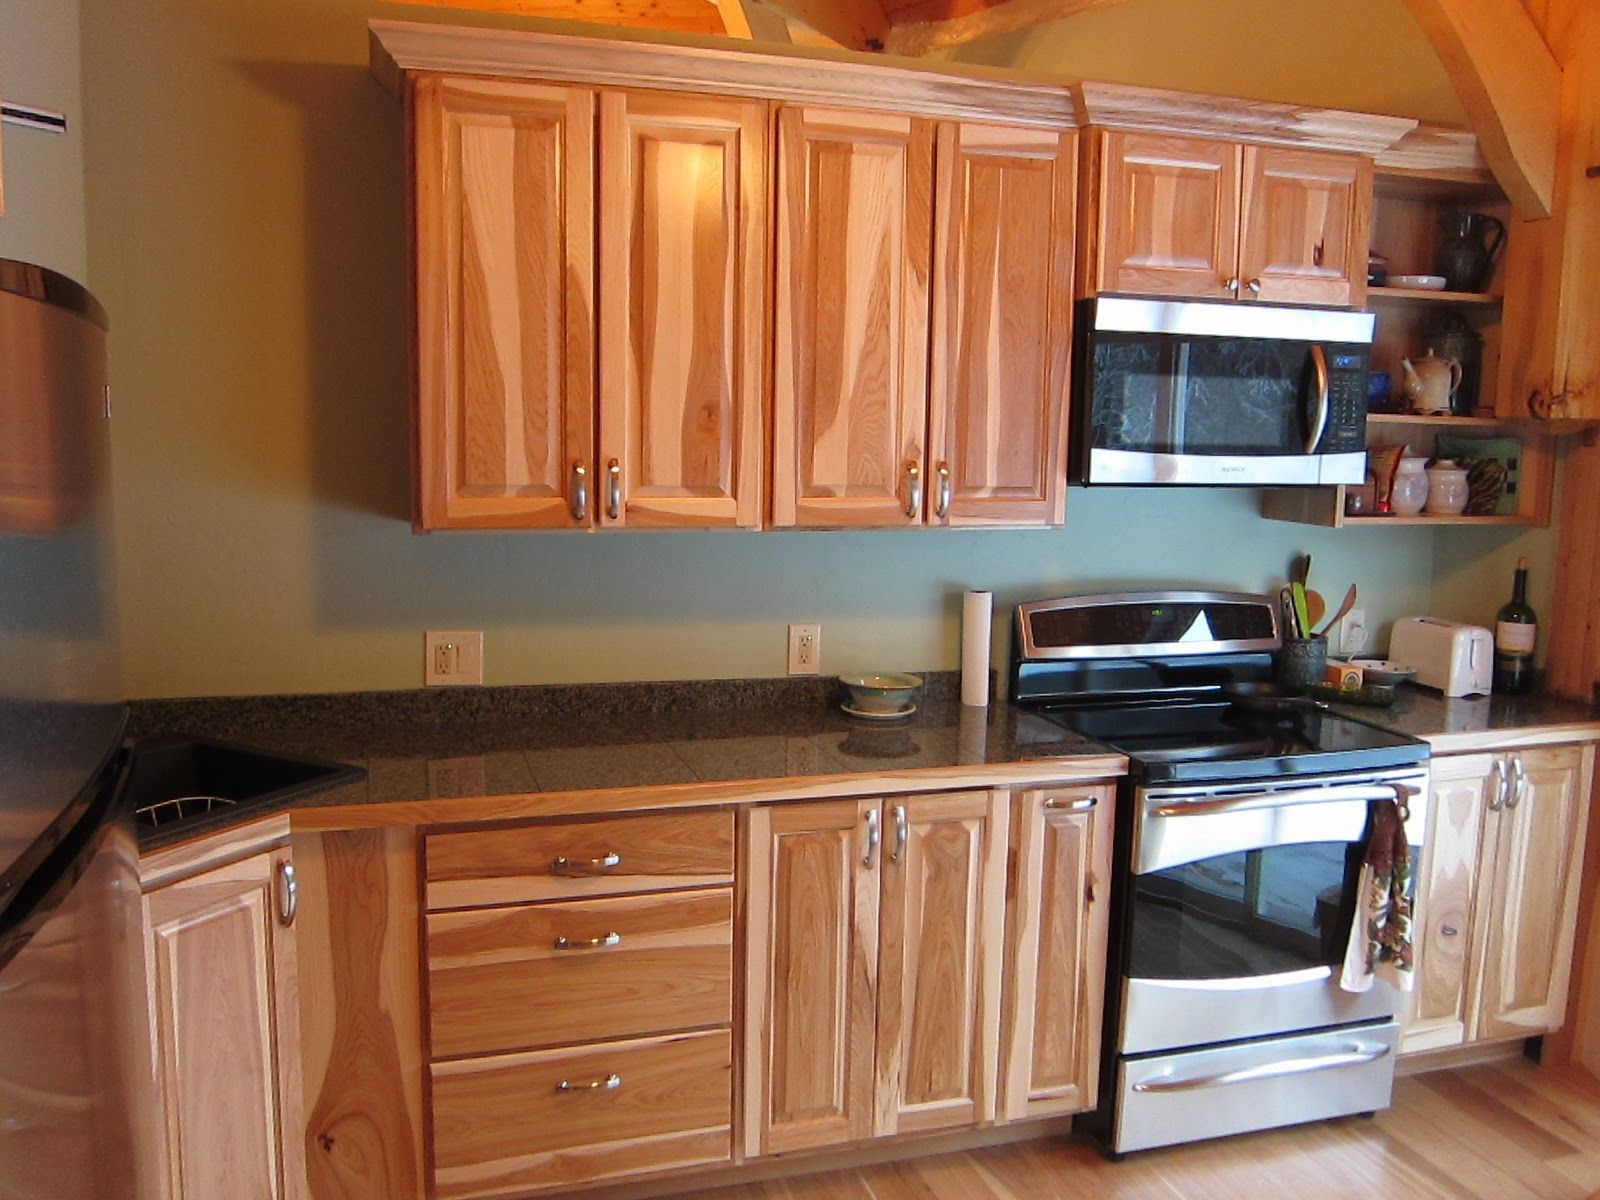 Hickory Kitchen Cabinets Hickory Kitchen Hickory Kitchen Cabinets Cheap Kitchen Cabinets